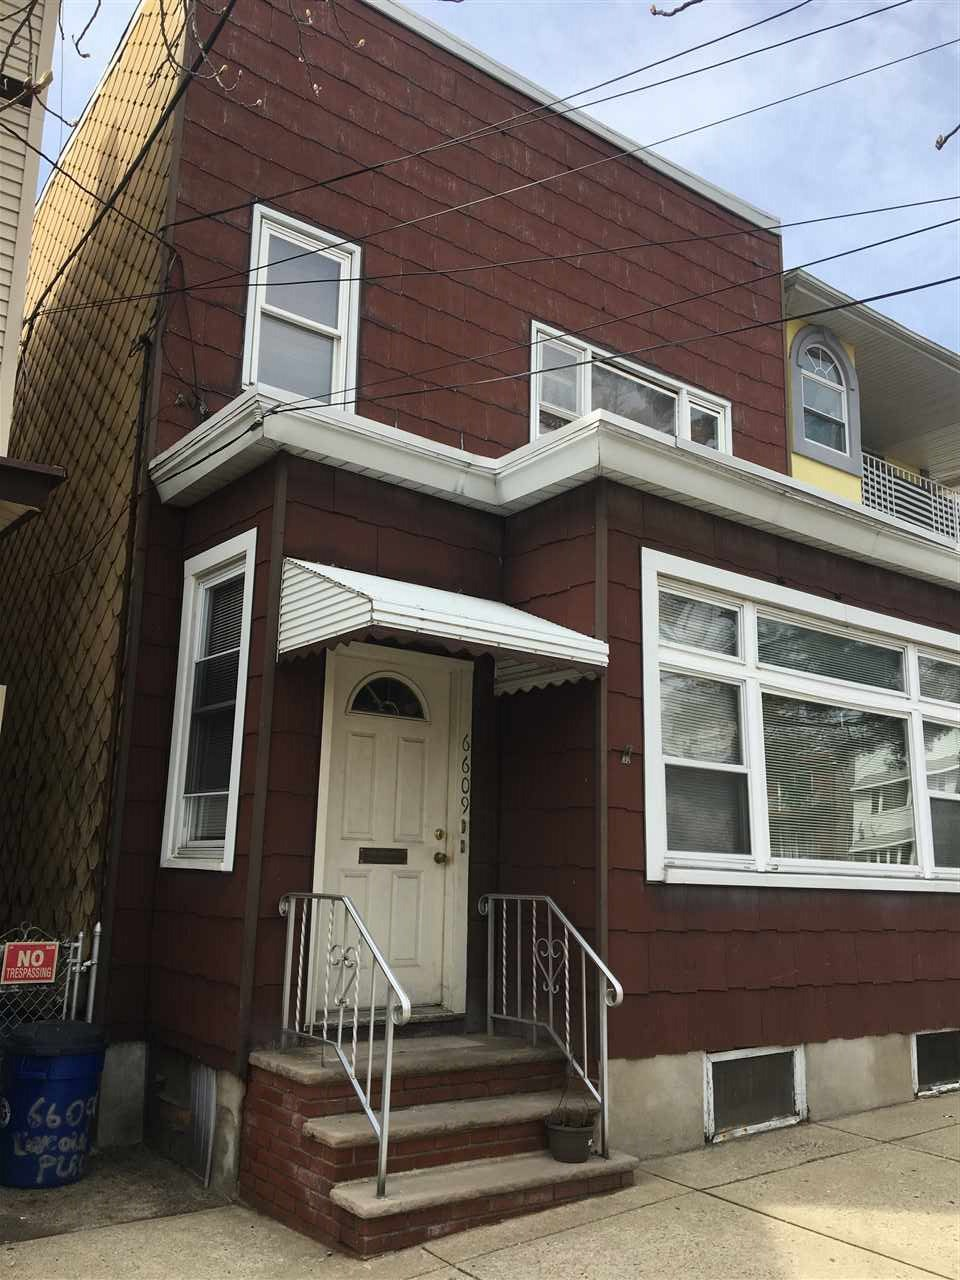 6609 LINCOLN PL, West New York, NJ 07093